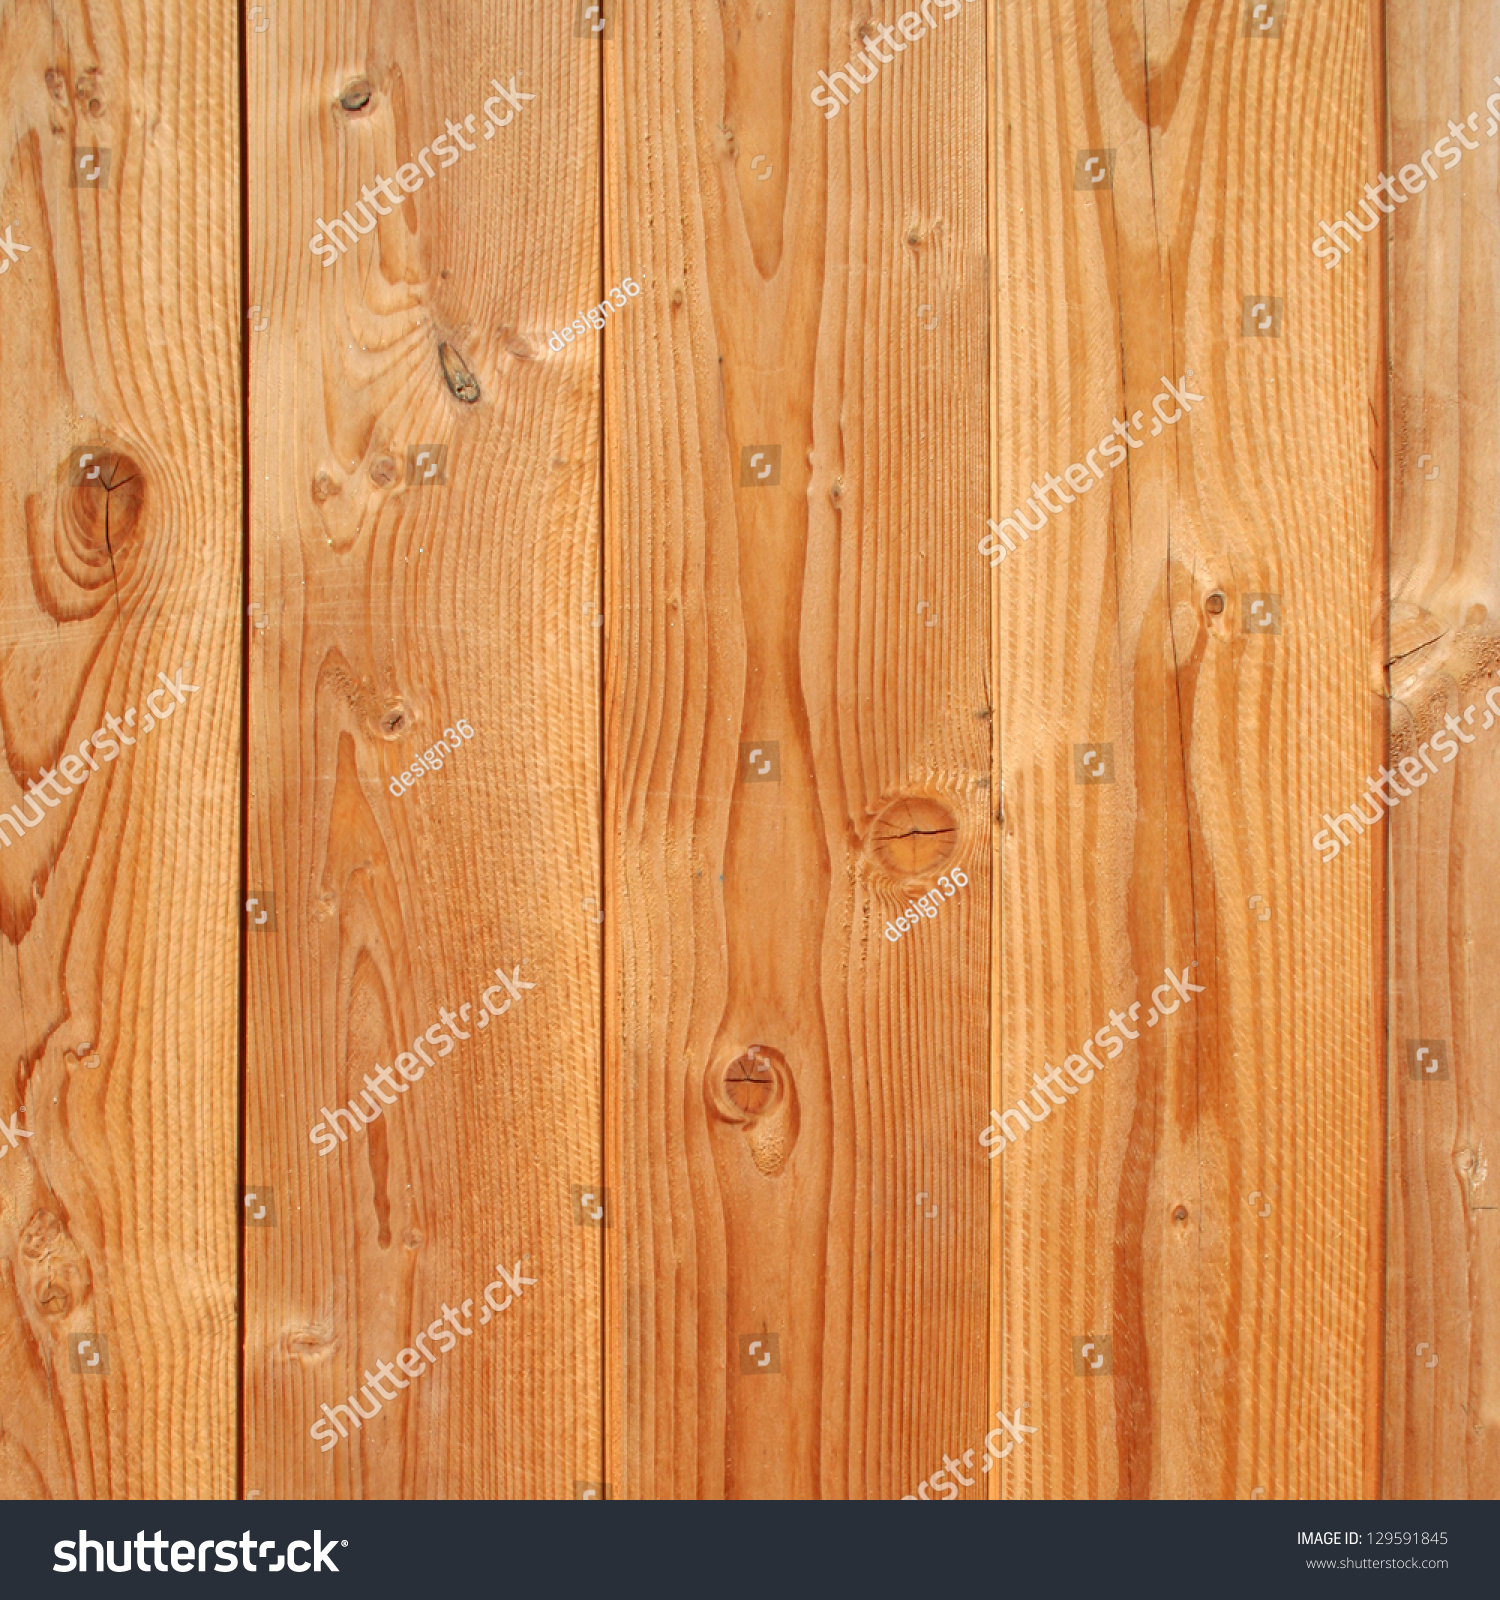 Old vintage white natural wood or wooden texture background or - Old Vintage Brown Natural Wood Or Wooden Texture Background Or Conceptual Backdrop Pattern Made Of Timber